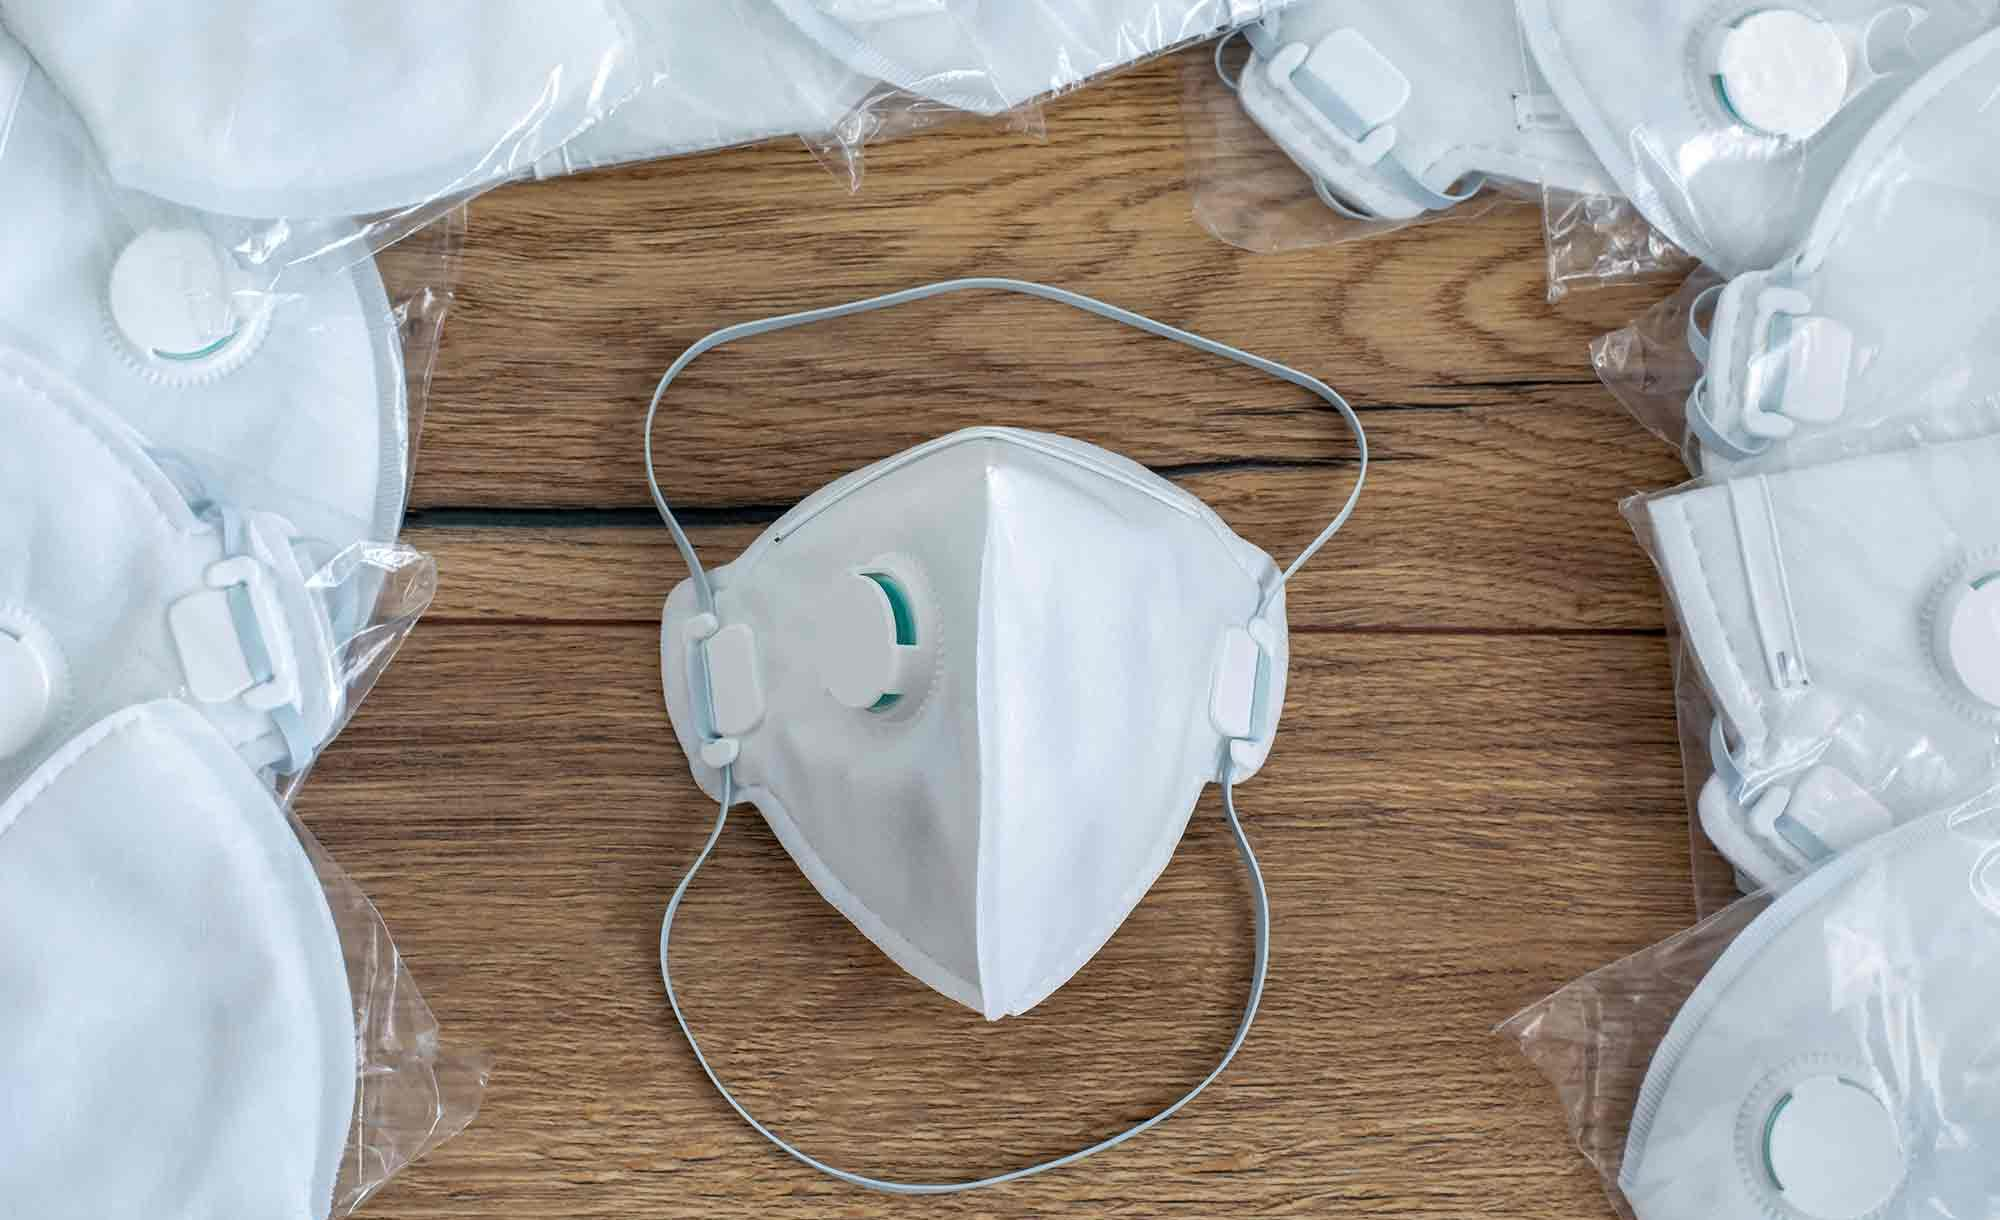 Four in five dentists cannot tolerate wearing an FFP2 or FFP3 respirator mask on a long-term basis, research reveals